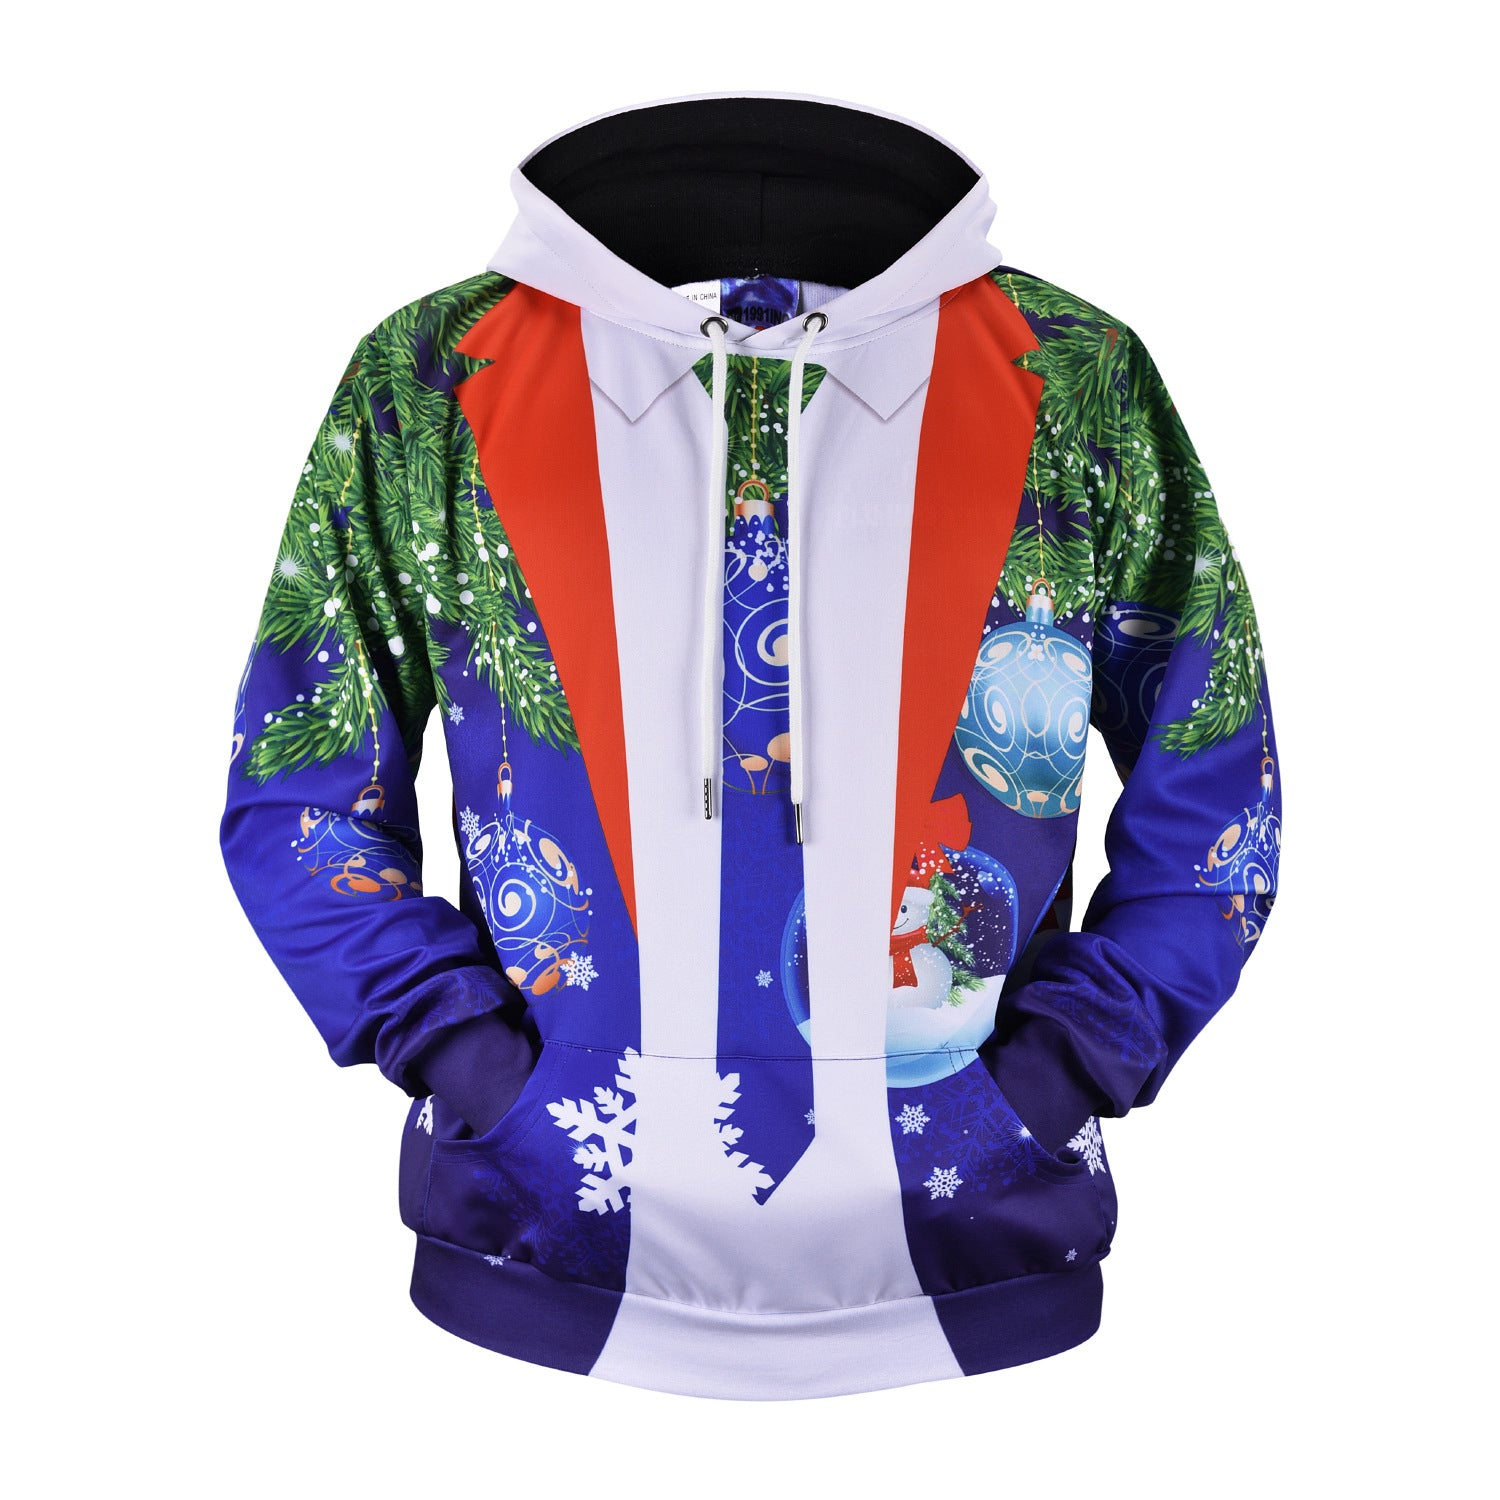 Men's 3D Printed Polyester Hoodies 3D L61016#